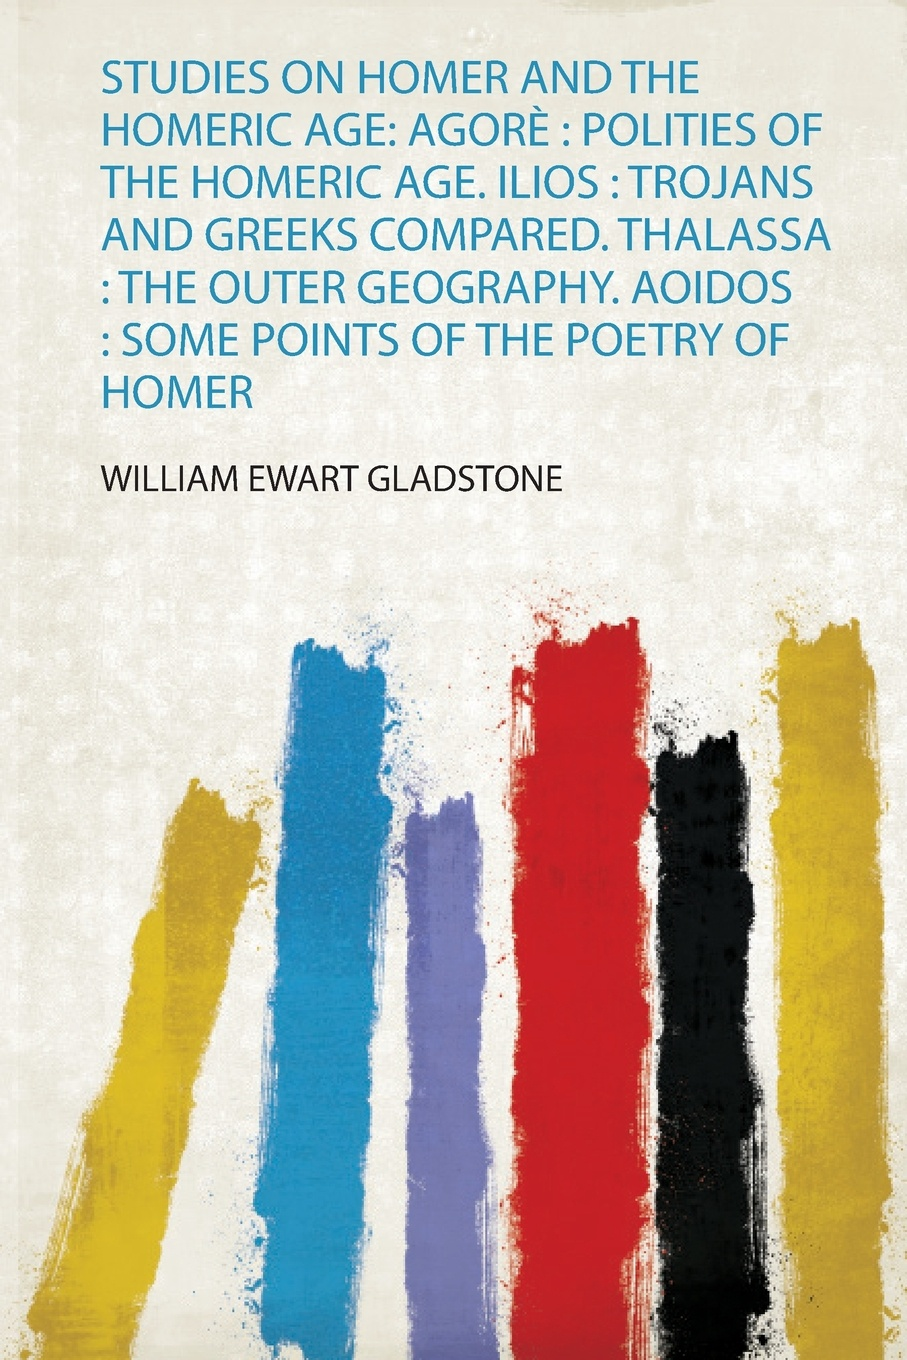 Studies on Homer and the Homeric Age. Agore : Polities of the Homeric Age. Ilios : Trojans and Greeks Compared. Thalassa : the Outer Geography. Aoidos : Some Points of the Poetry of Homer gladstone william ewart studies on homer and the homeric age vol 3 of 3